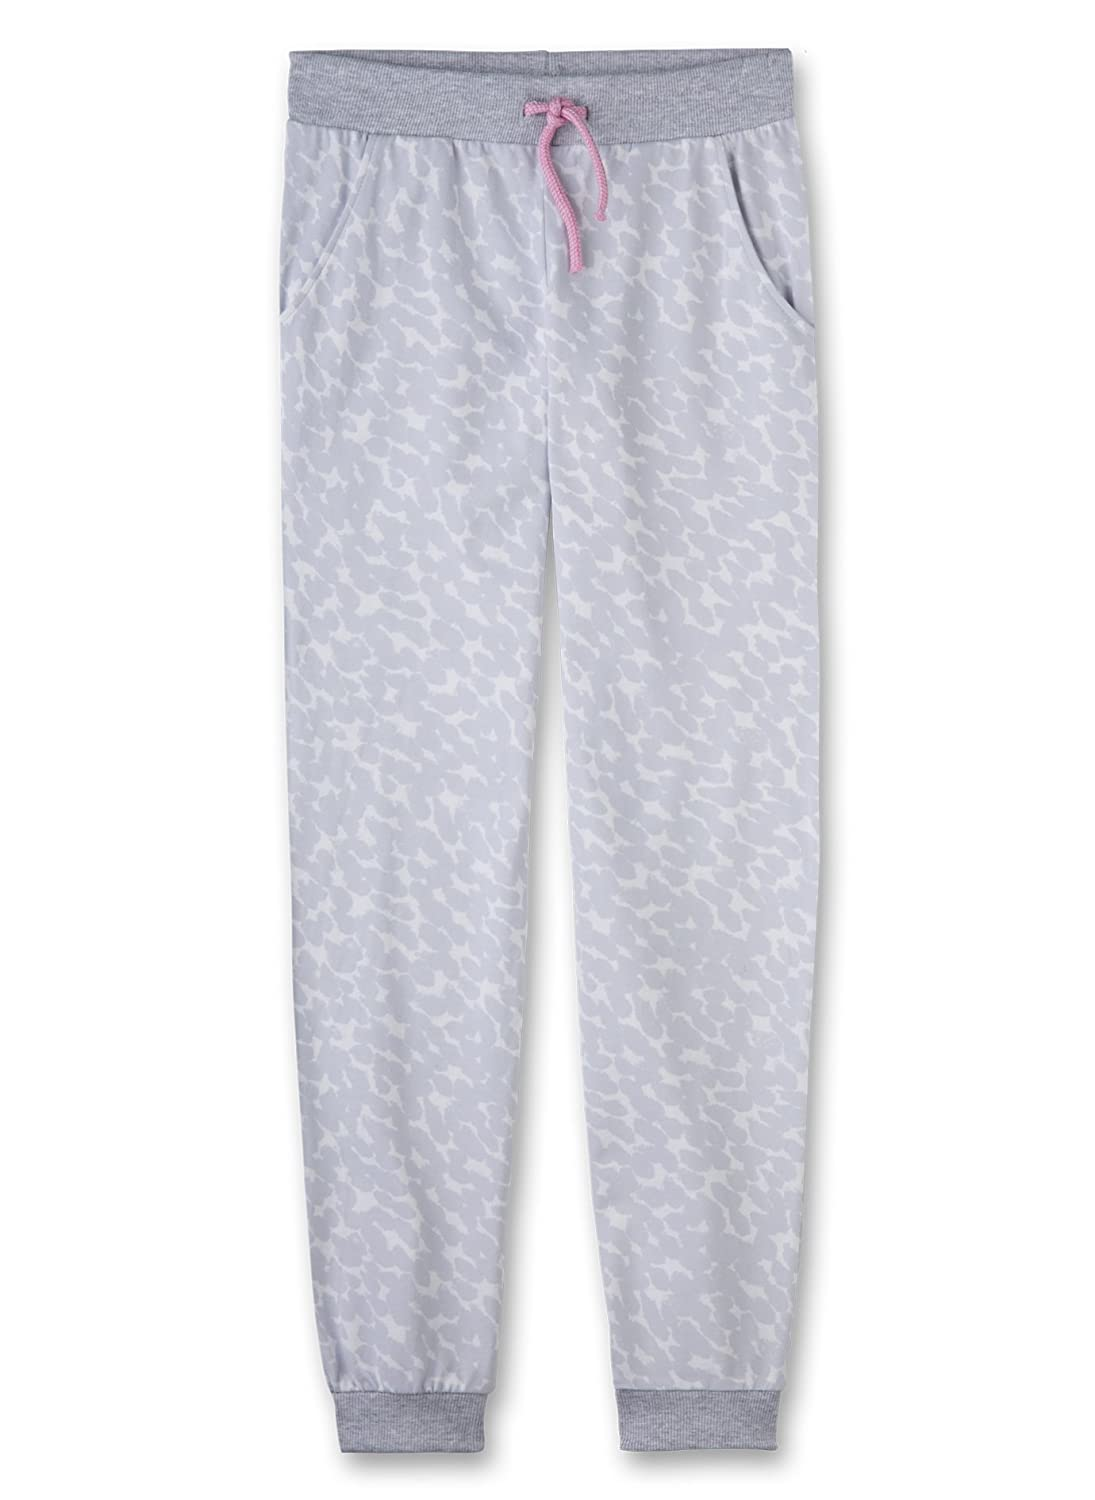 Sanetta Girl's Pyjama Bottoms 243705